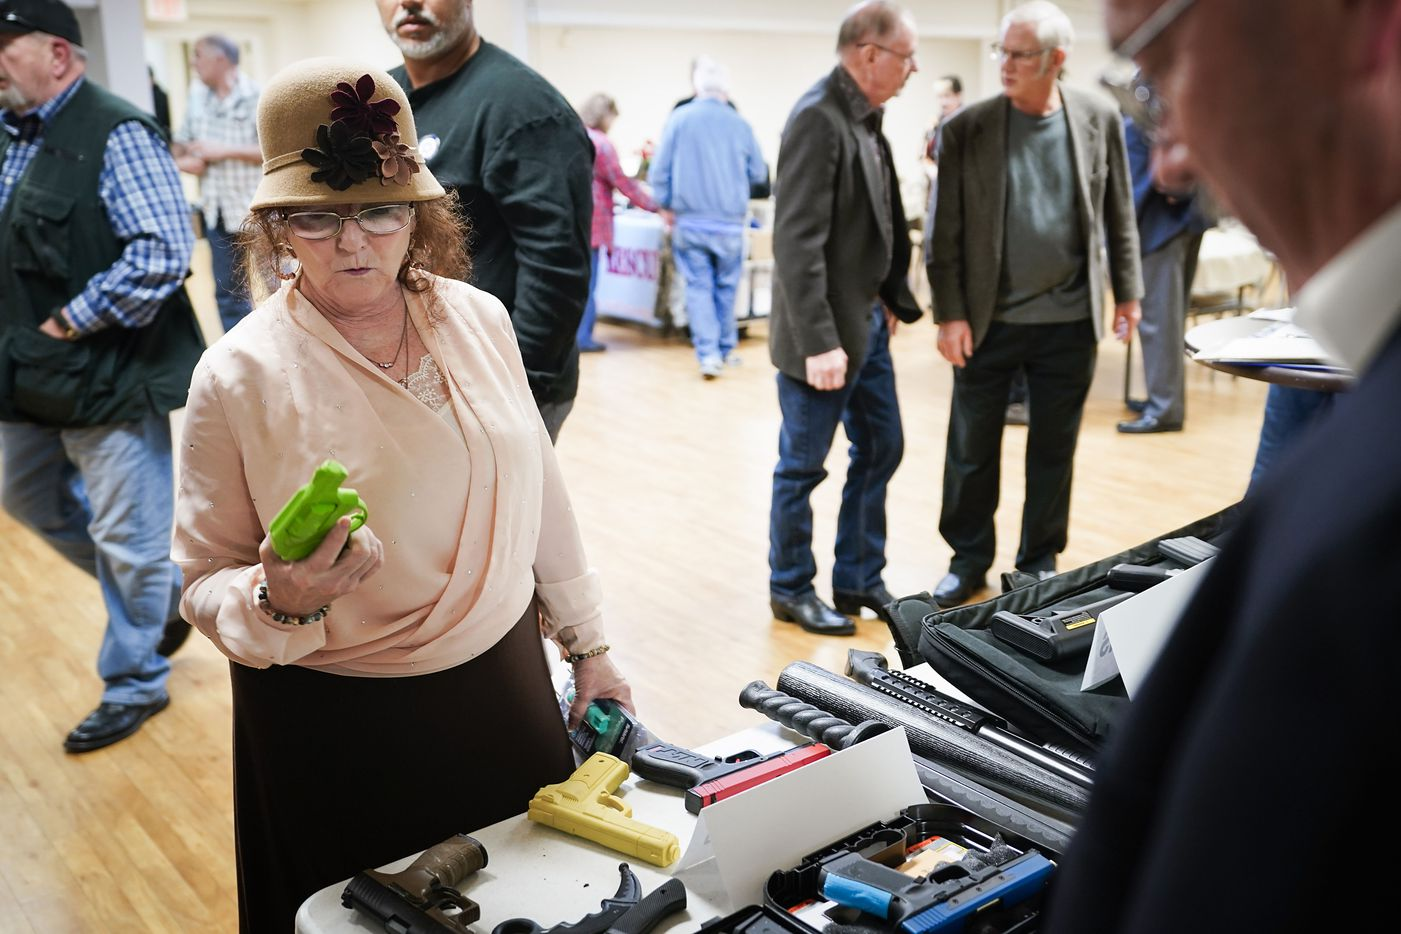 Sharon Bascom, of Quinlan, Texas, checks out a training weapon displayed by Sentry One Consulting Group at during a  church safety seminar at North Pointe Baptist Church on Sunday, Jan. 26, 2020, in Hurst, Texas.